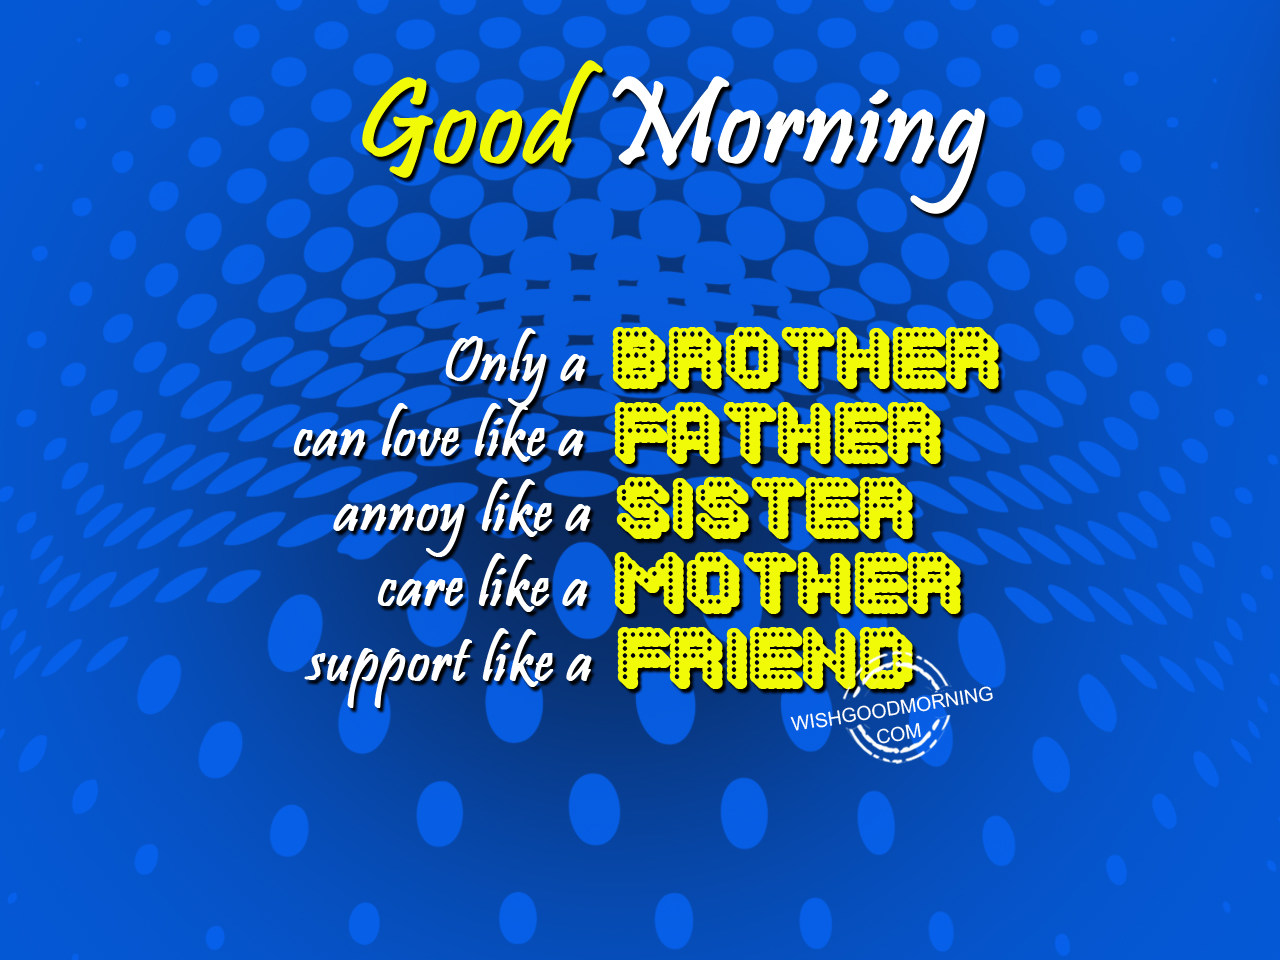 Good Morning All Image Download : Good morning wishes for brother pictures images